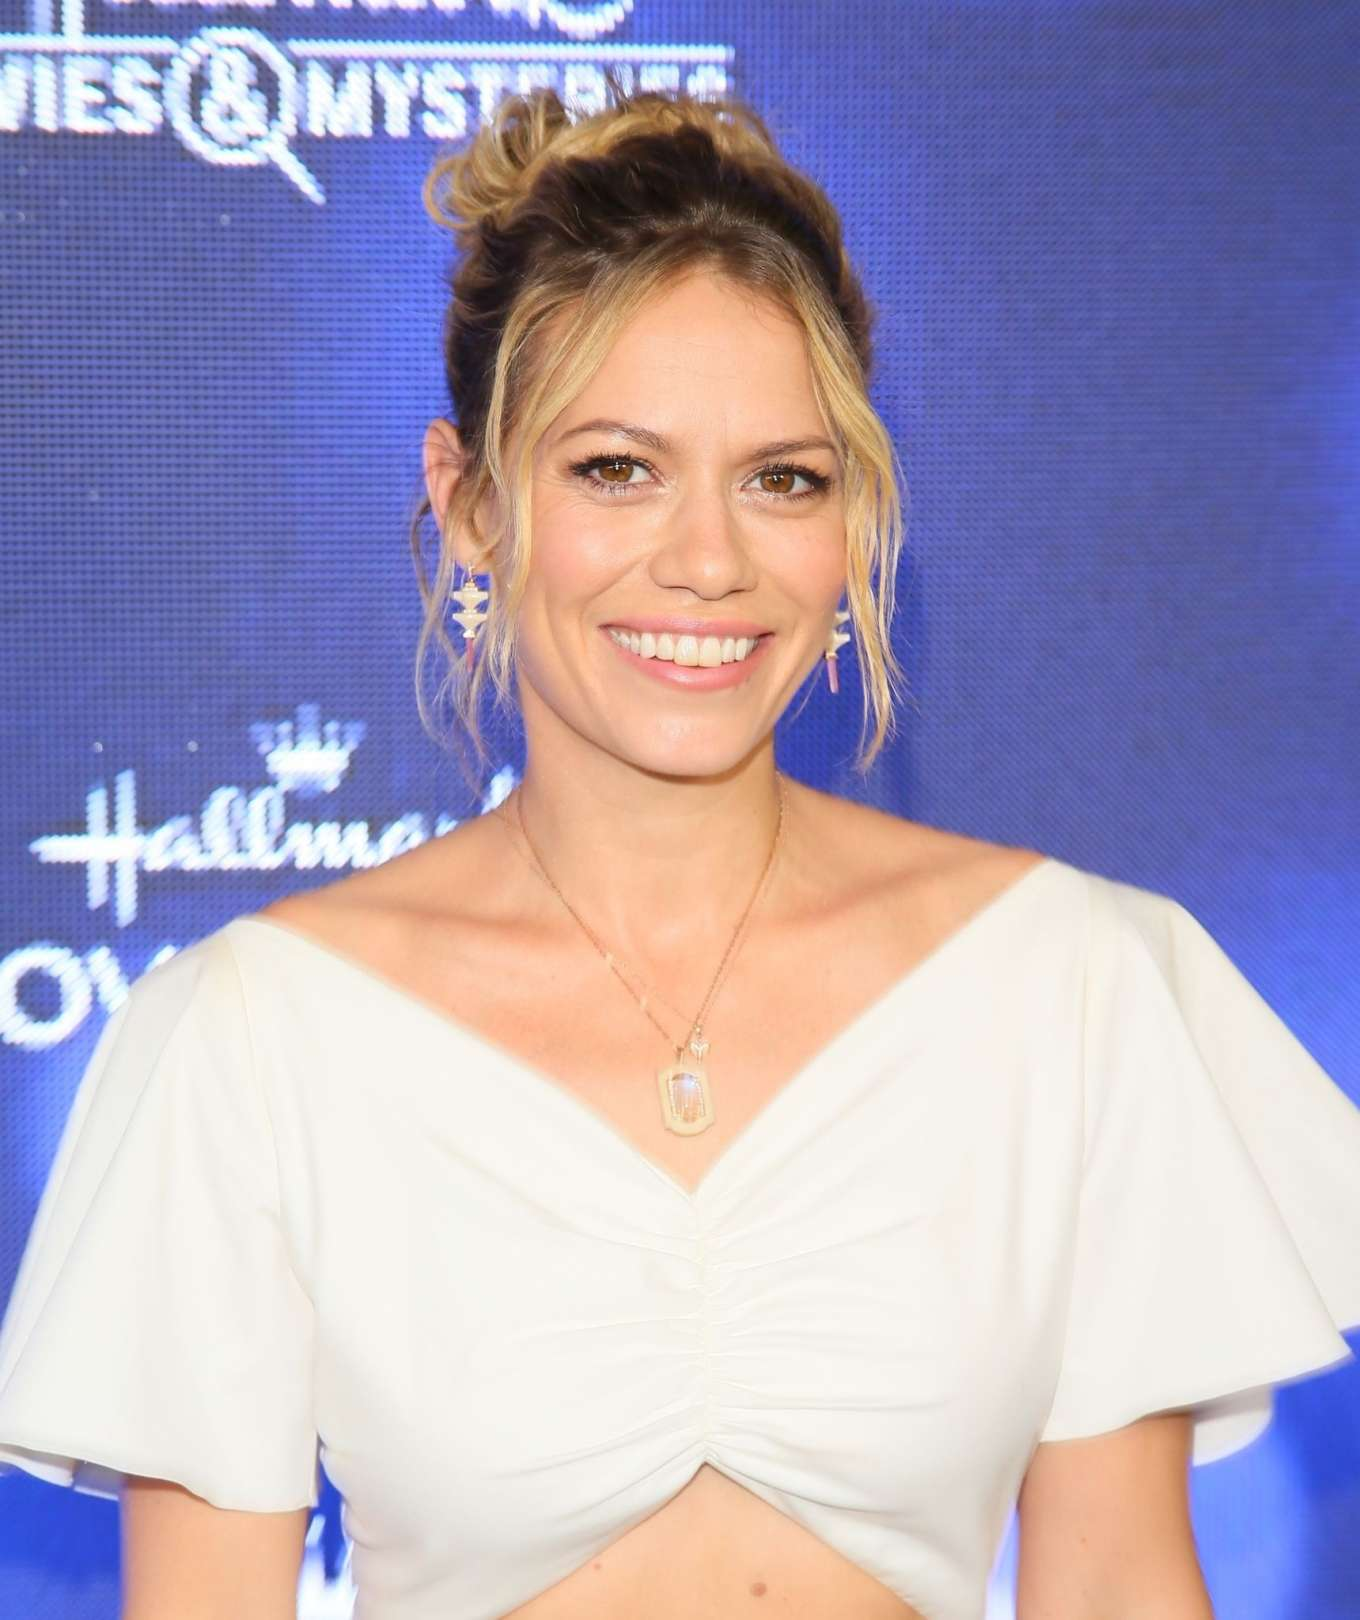 Bethany Joy Lenz 2019 : Bethany Joy Lenz – Hallmark Channel Summer 2019 TCA Event-09